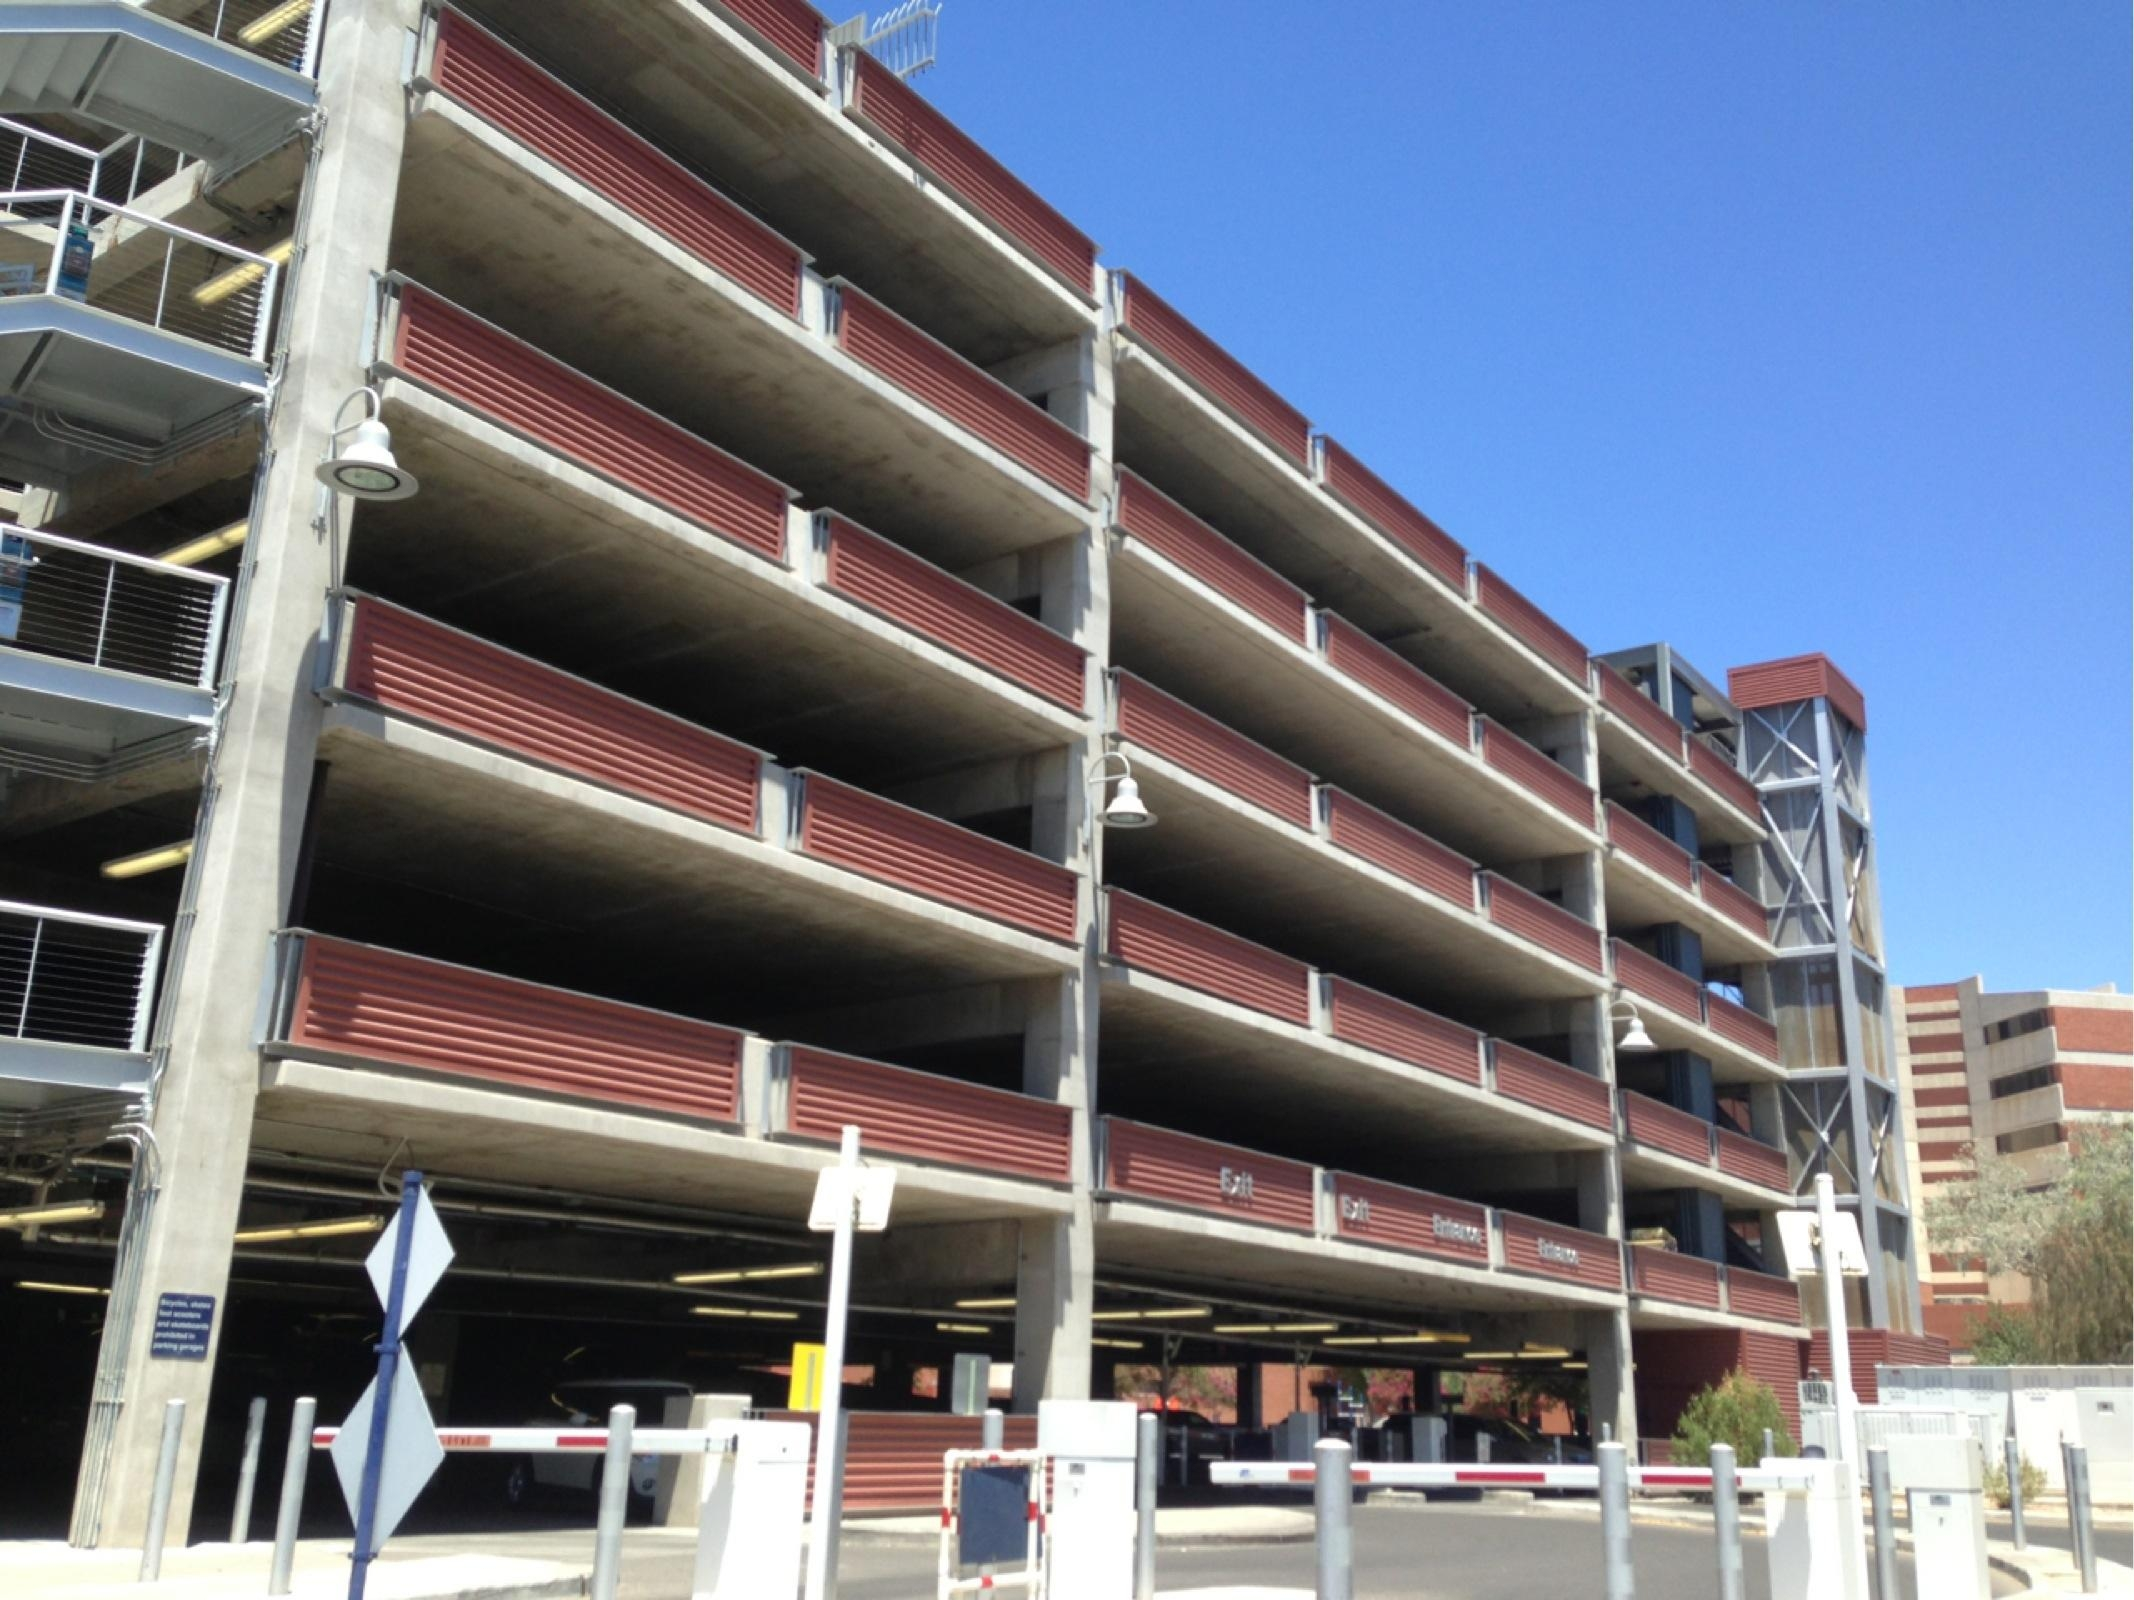 1201 E 6th St Garage Parking In Tucson Parkme Make Your Own Beautiful  HD Wallpapers, Images Over 1000+ [ralydesign.ml]